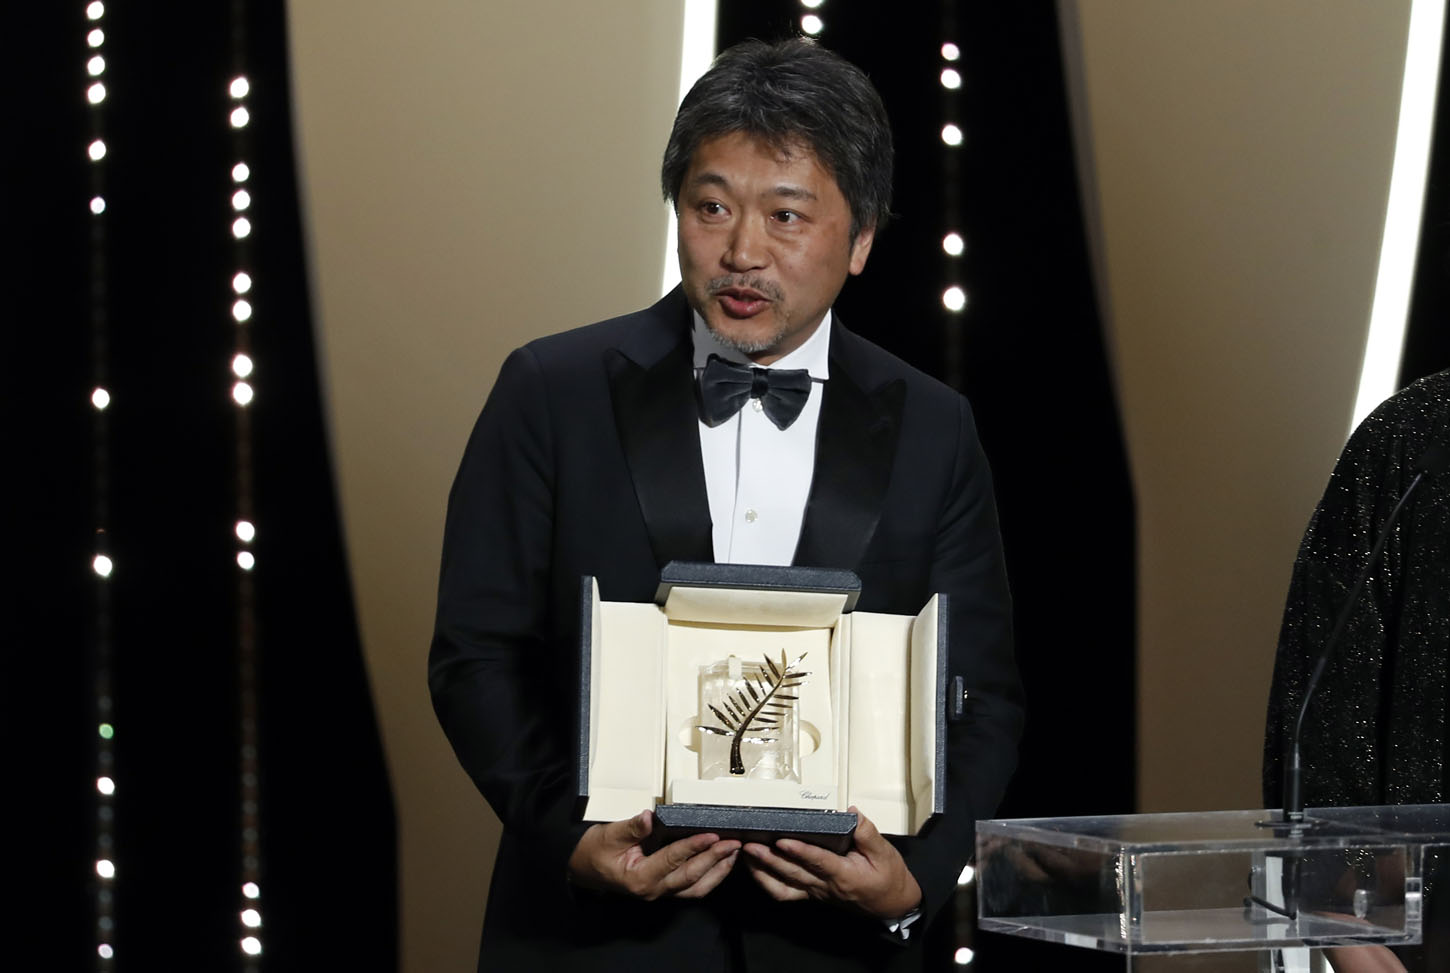 71st Cannes Film Festival - Closing ceremony - Cannes, France, May 19, 2018. Director Hirokazu Kore-eda, Palme d'Or award winner for his film